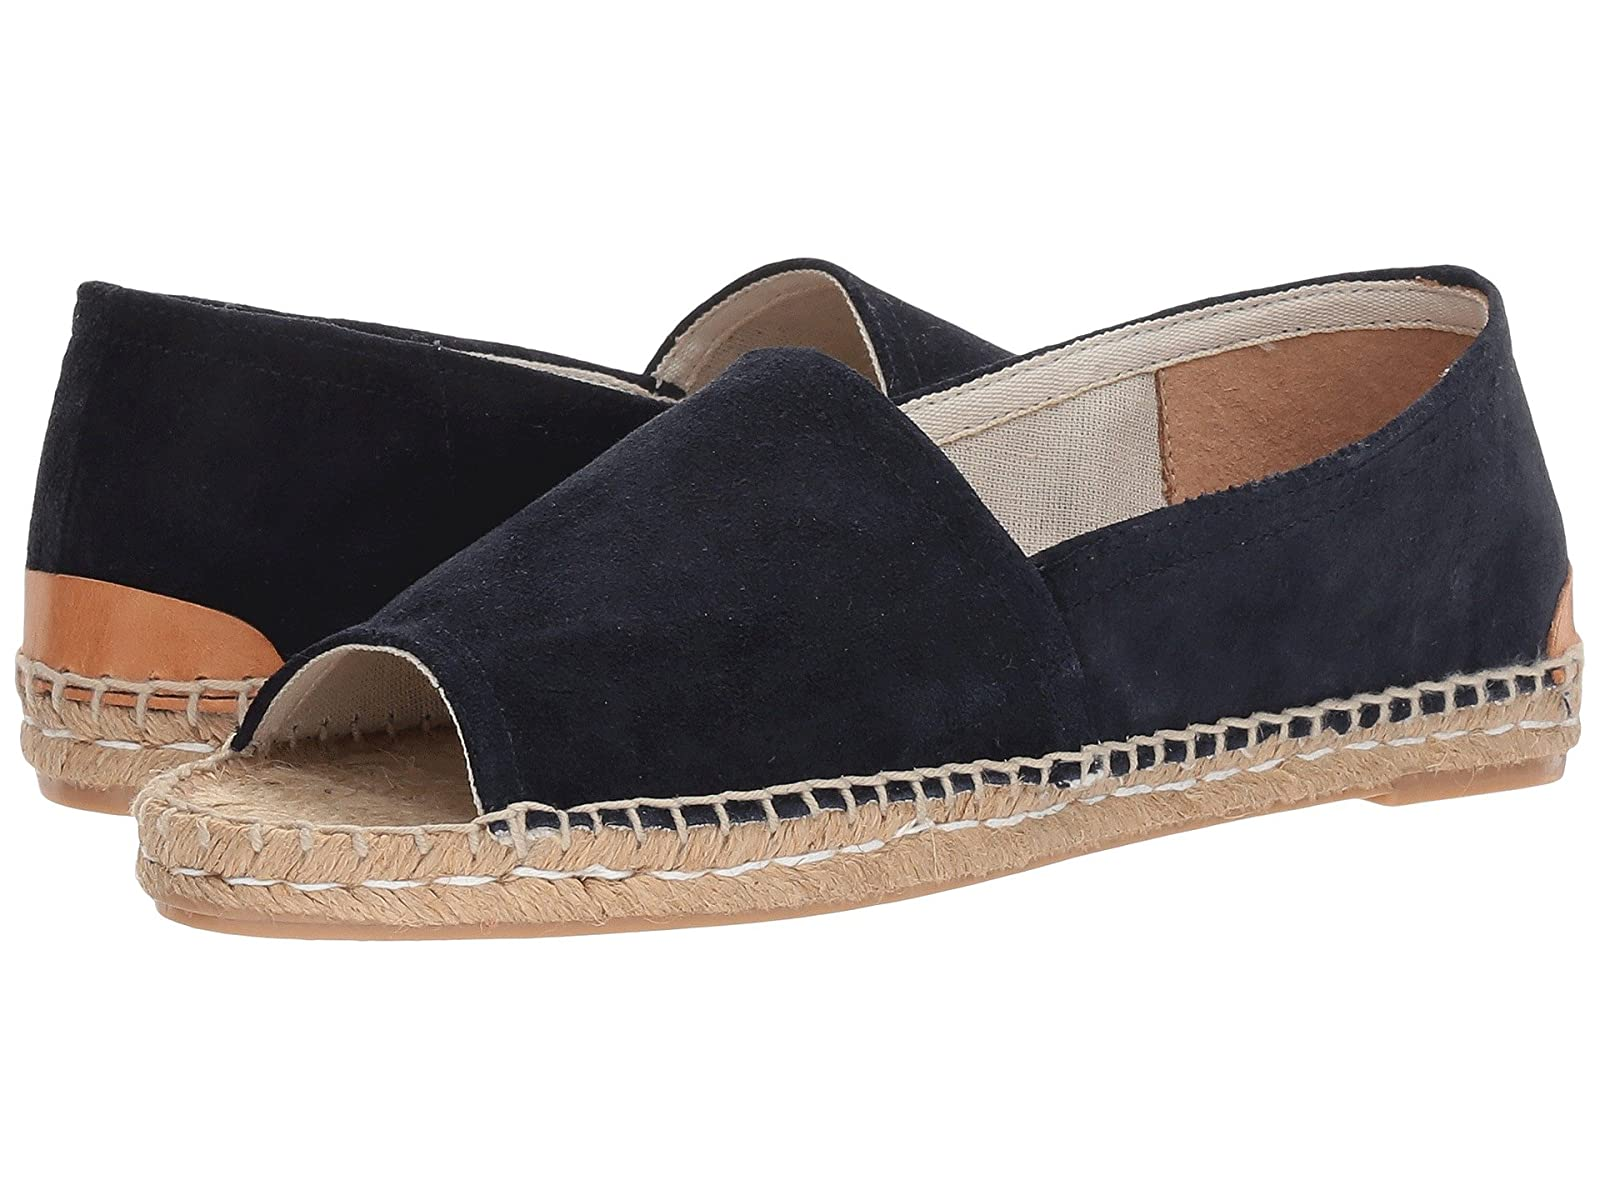 Patricia Green AshleyAtmospheric grades have affordable shoes